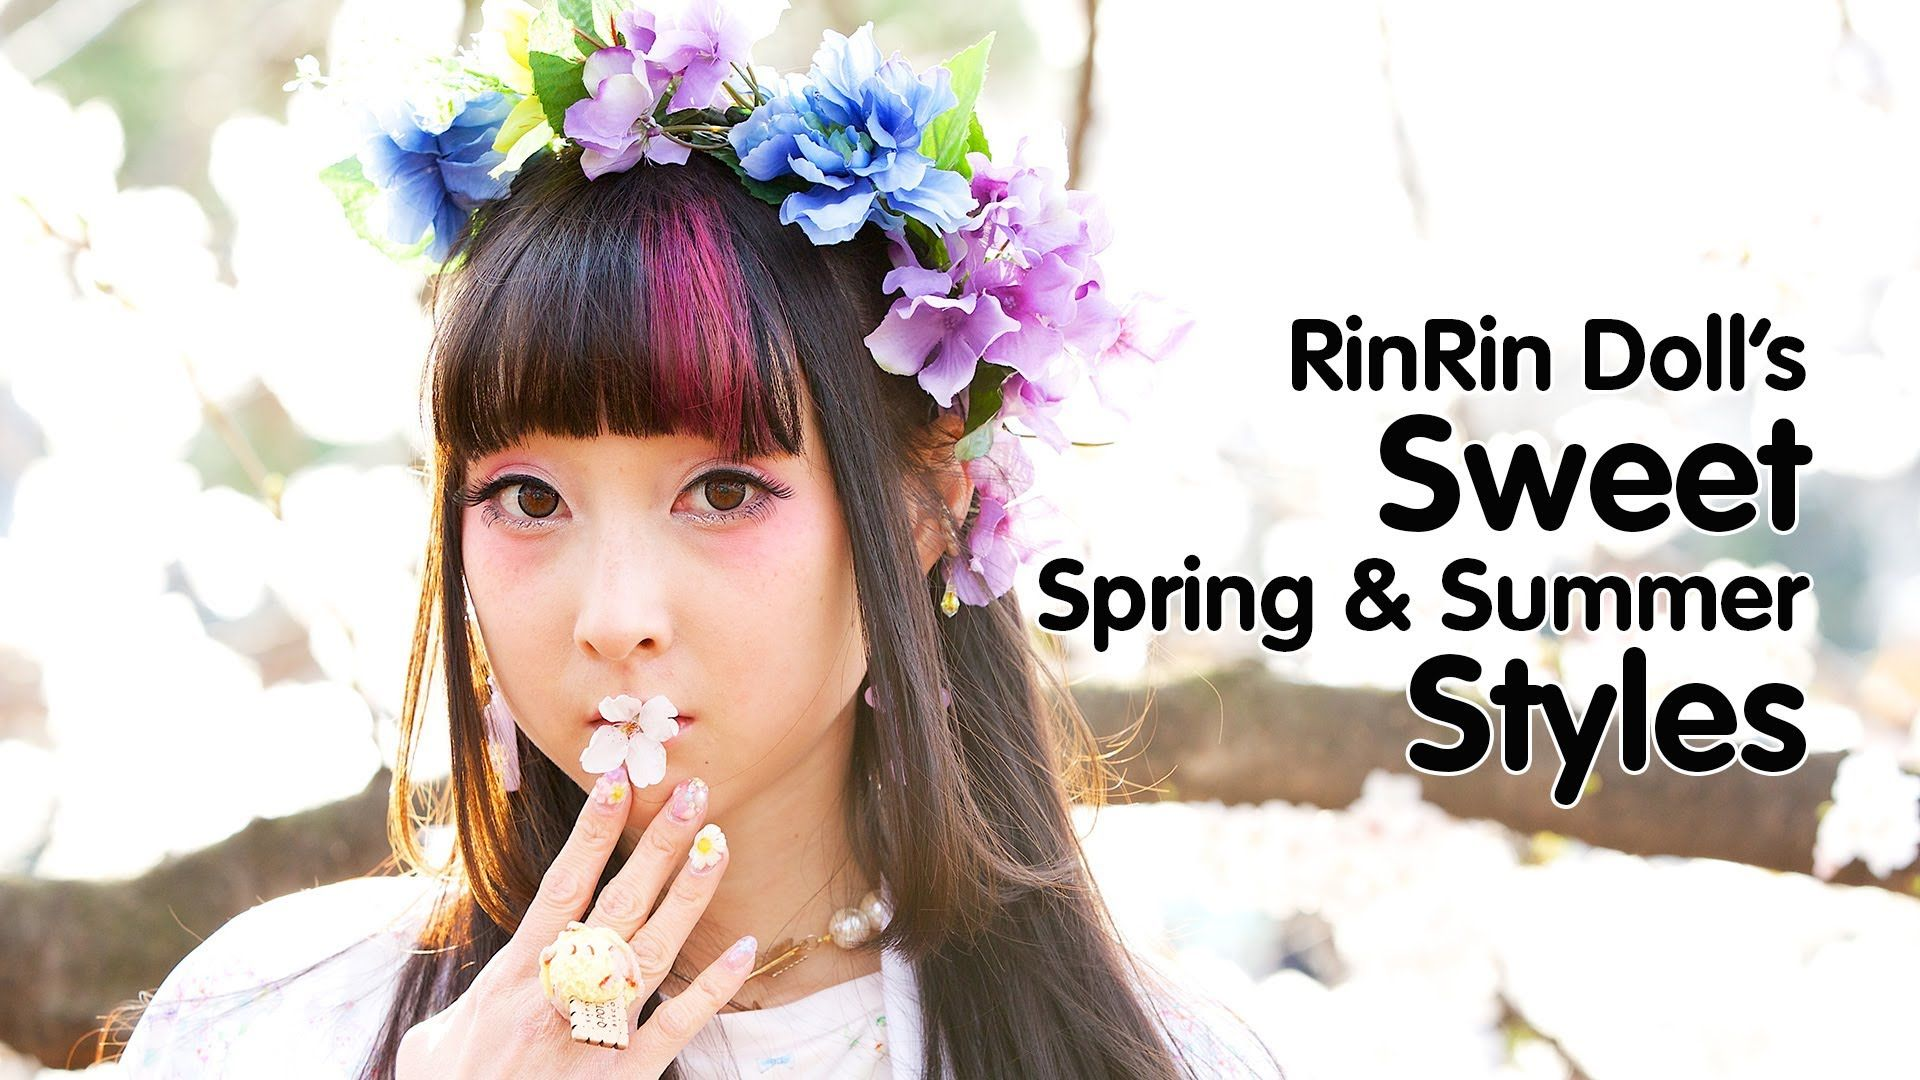 Sweet Harajuku Styles For Spring & Summer By RinRin Doll